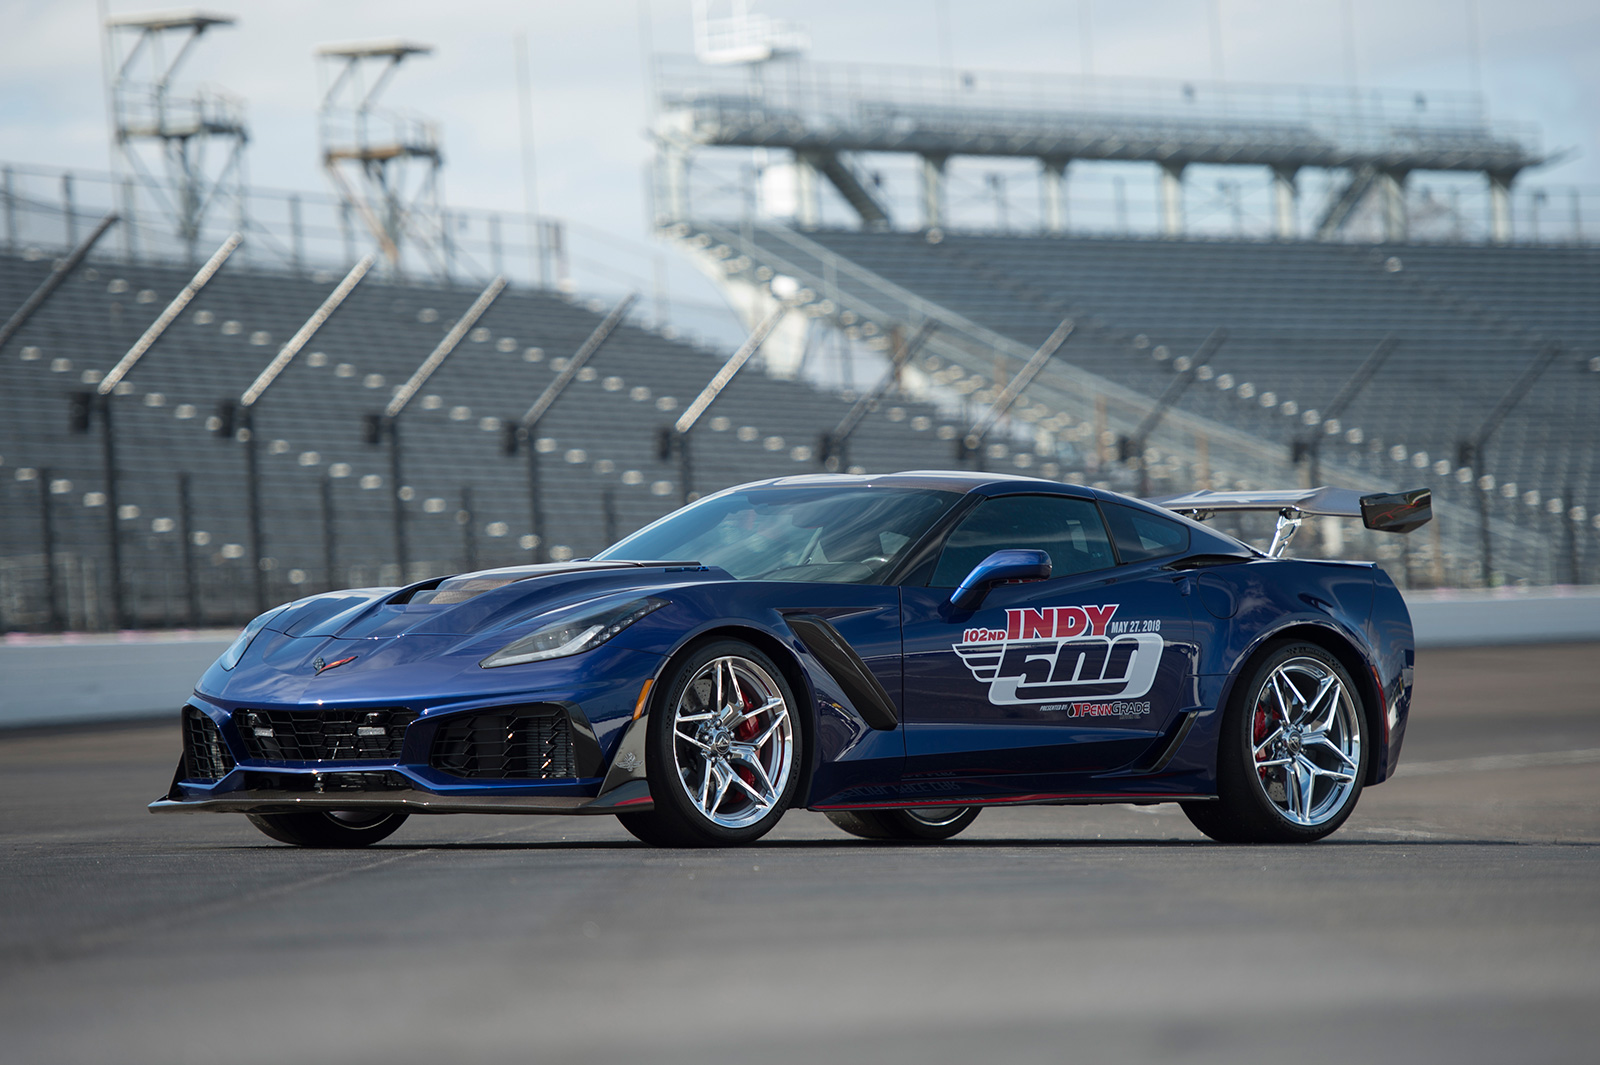 2019 Indy 500 Pace Car: 2019 Chevrolet Corvette ZR1 Named Indy 500 Pace Car